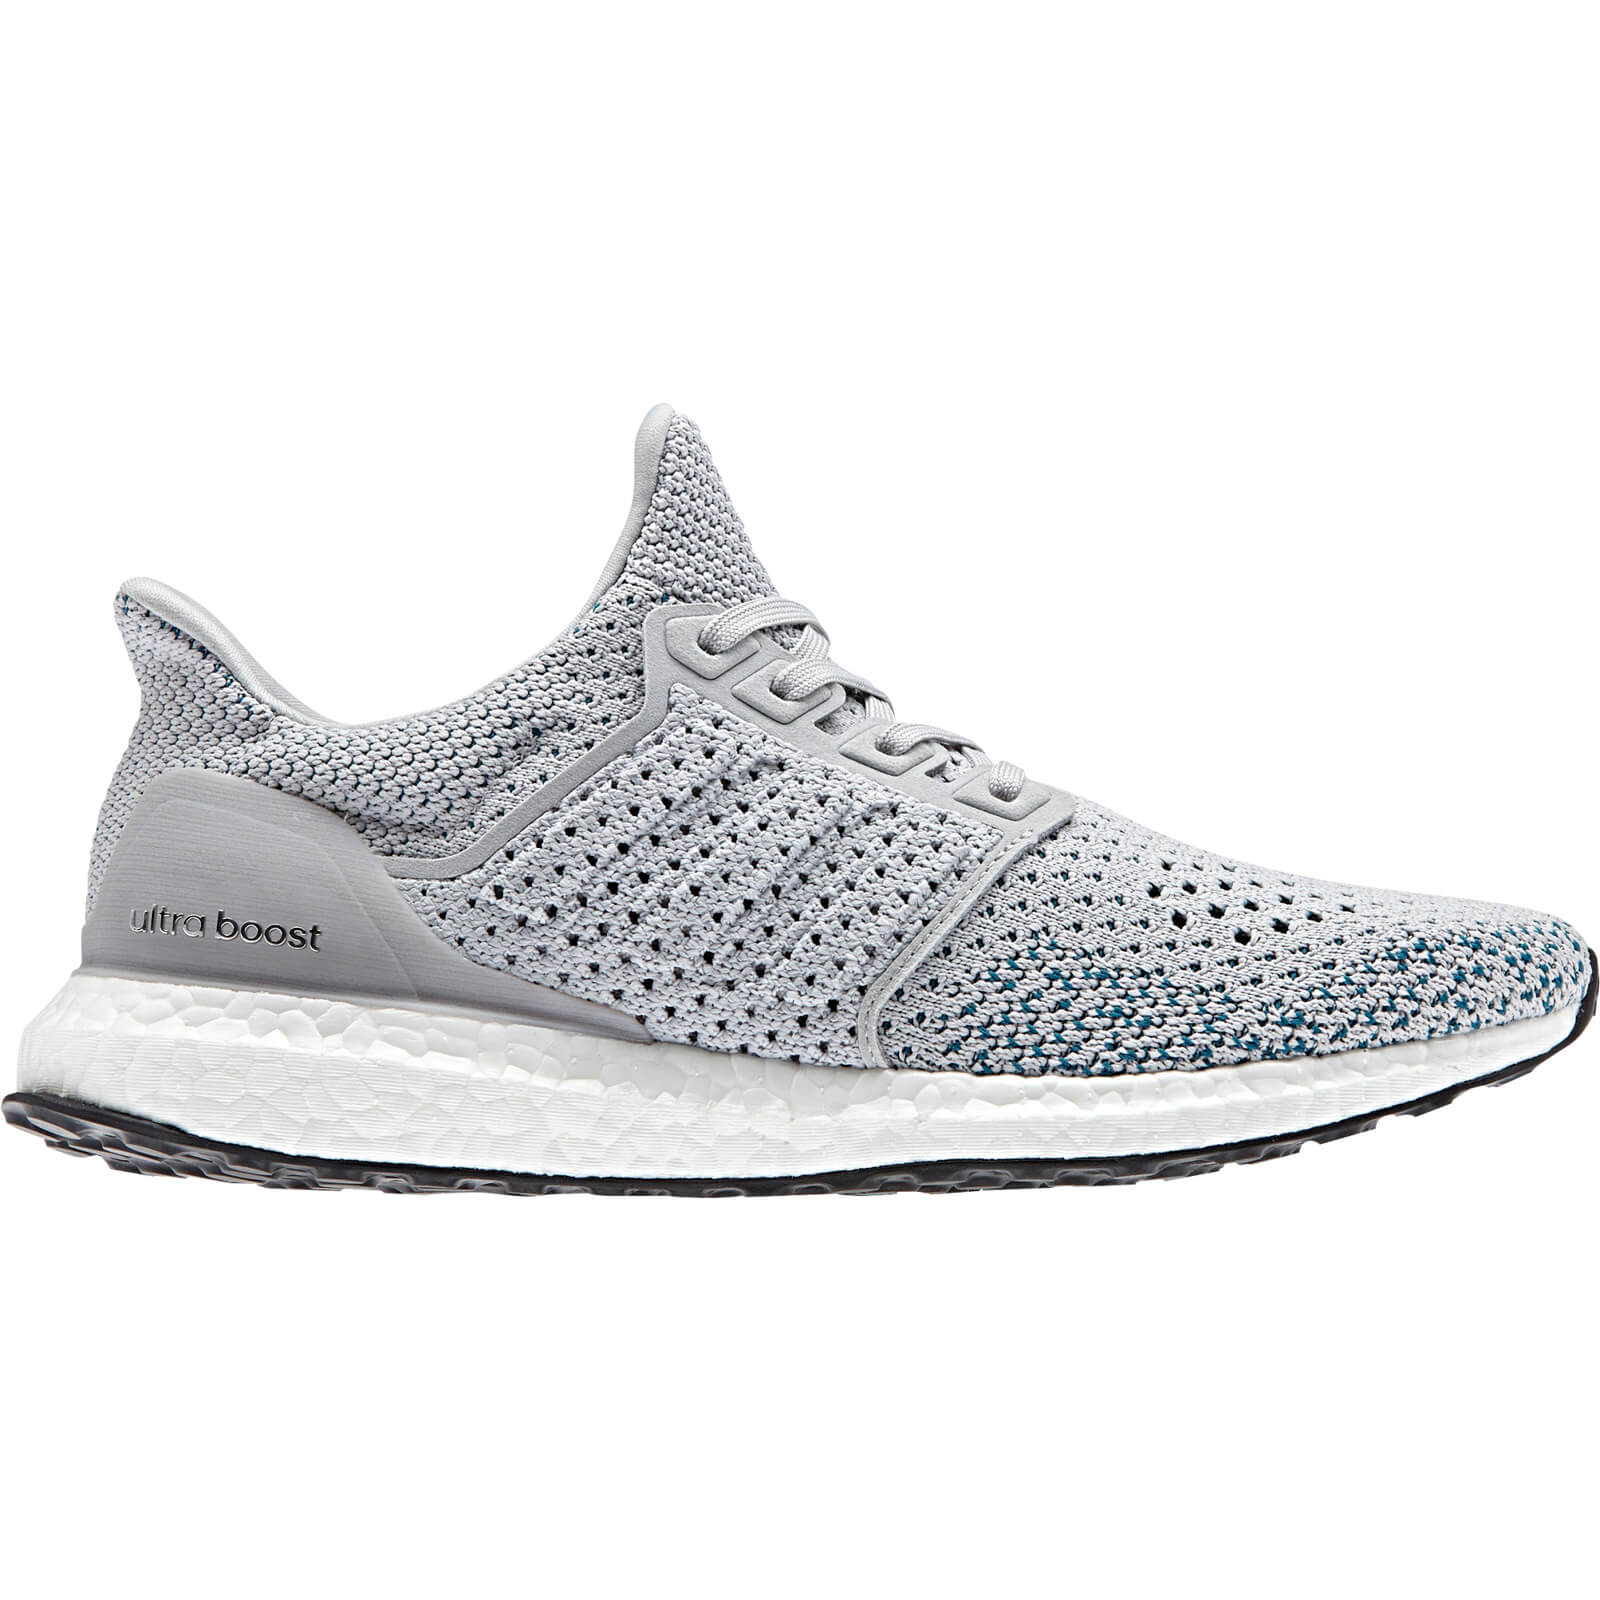 69704d9f5 adidas Men s Ultraboost Clima Running Shoes - Grey